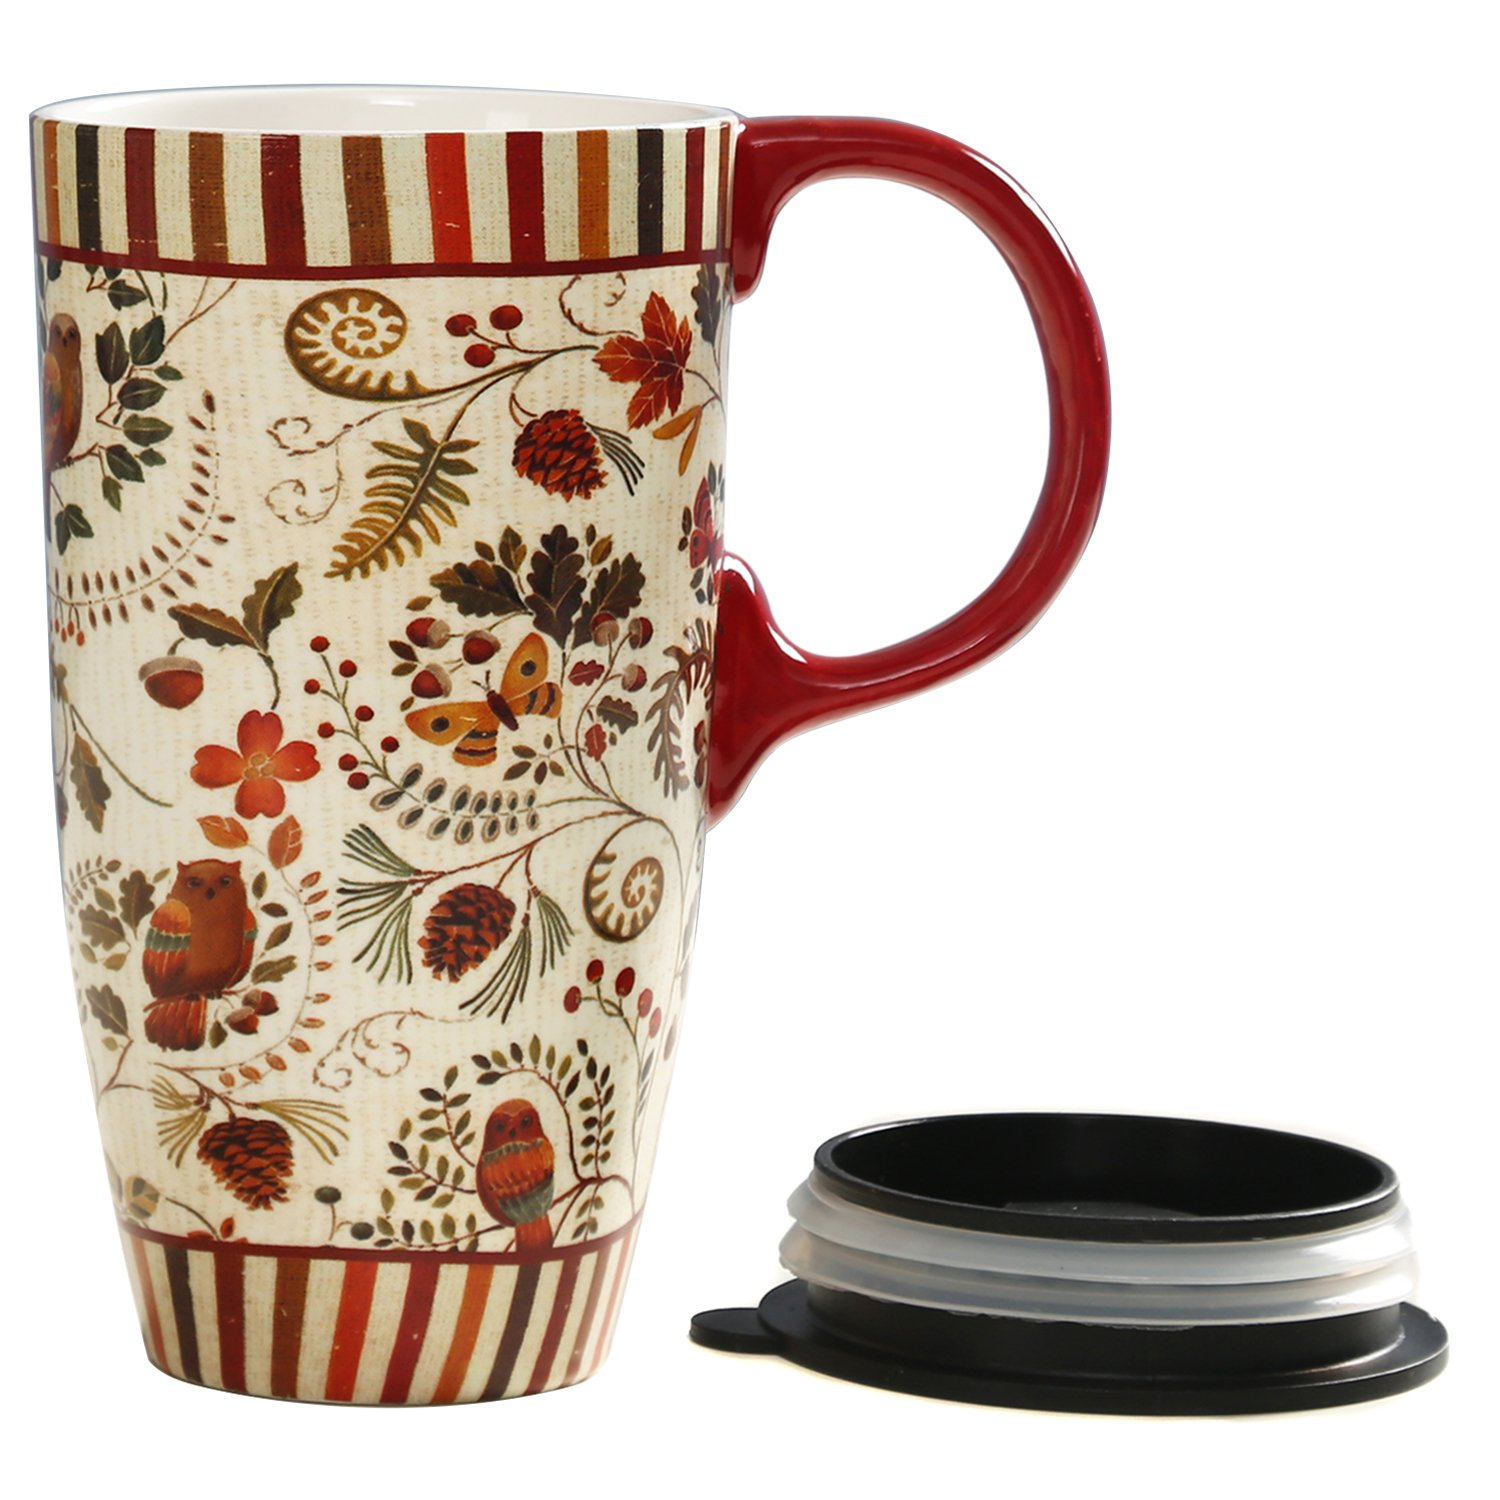 CEDAR HOME Travel Coffee Ceramic Mug Porcelain Latte Tea Cup With Lid in Gift Box 17oz. Live Your Bliss CQ3LTM4256L